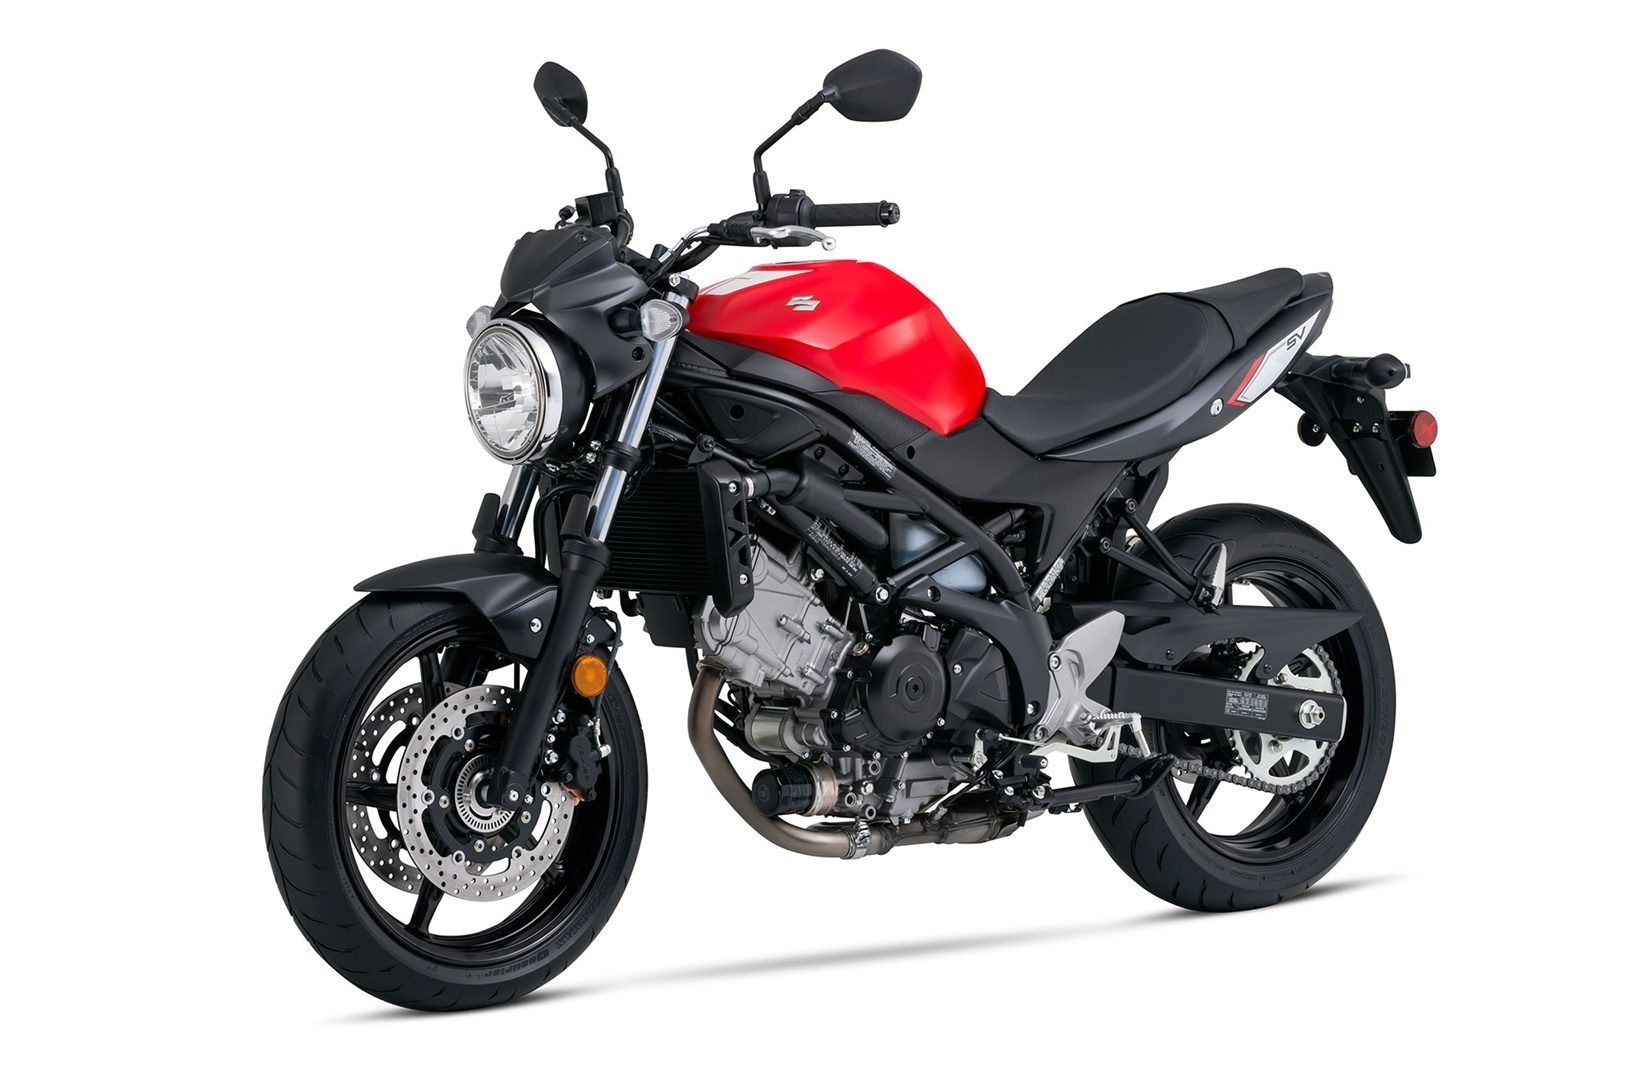 2017 Suzuki SV650 ABS in Brea, California